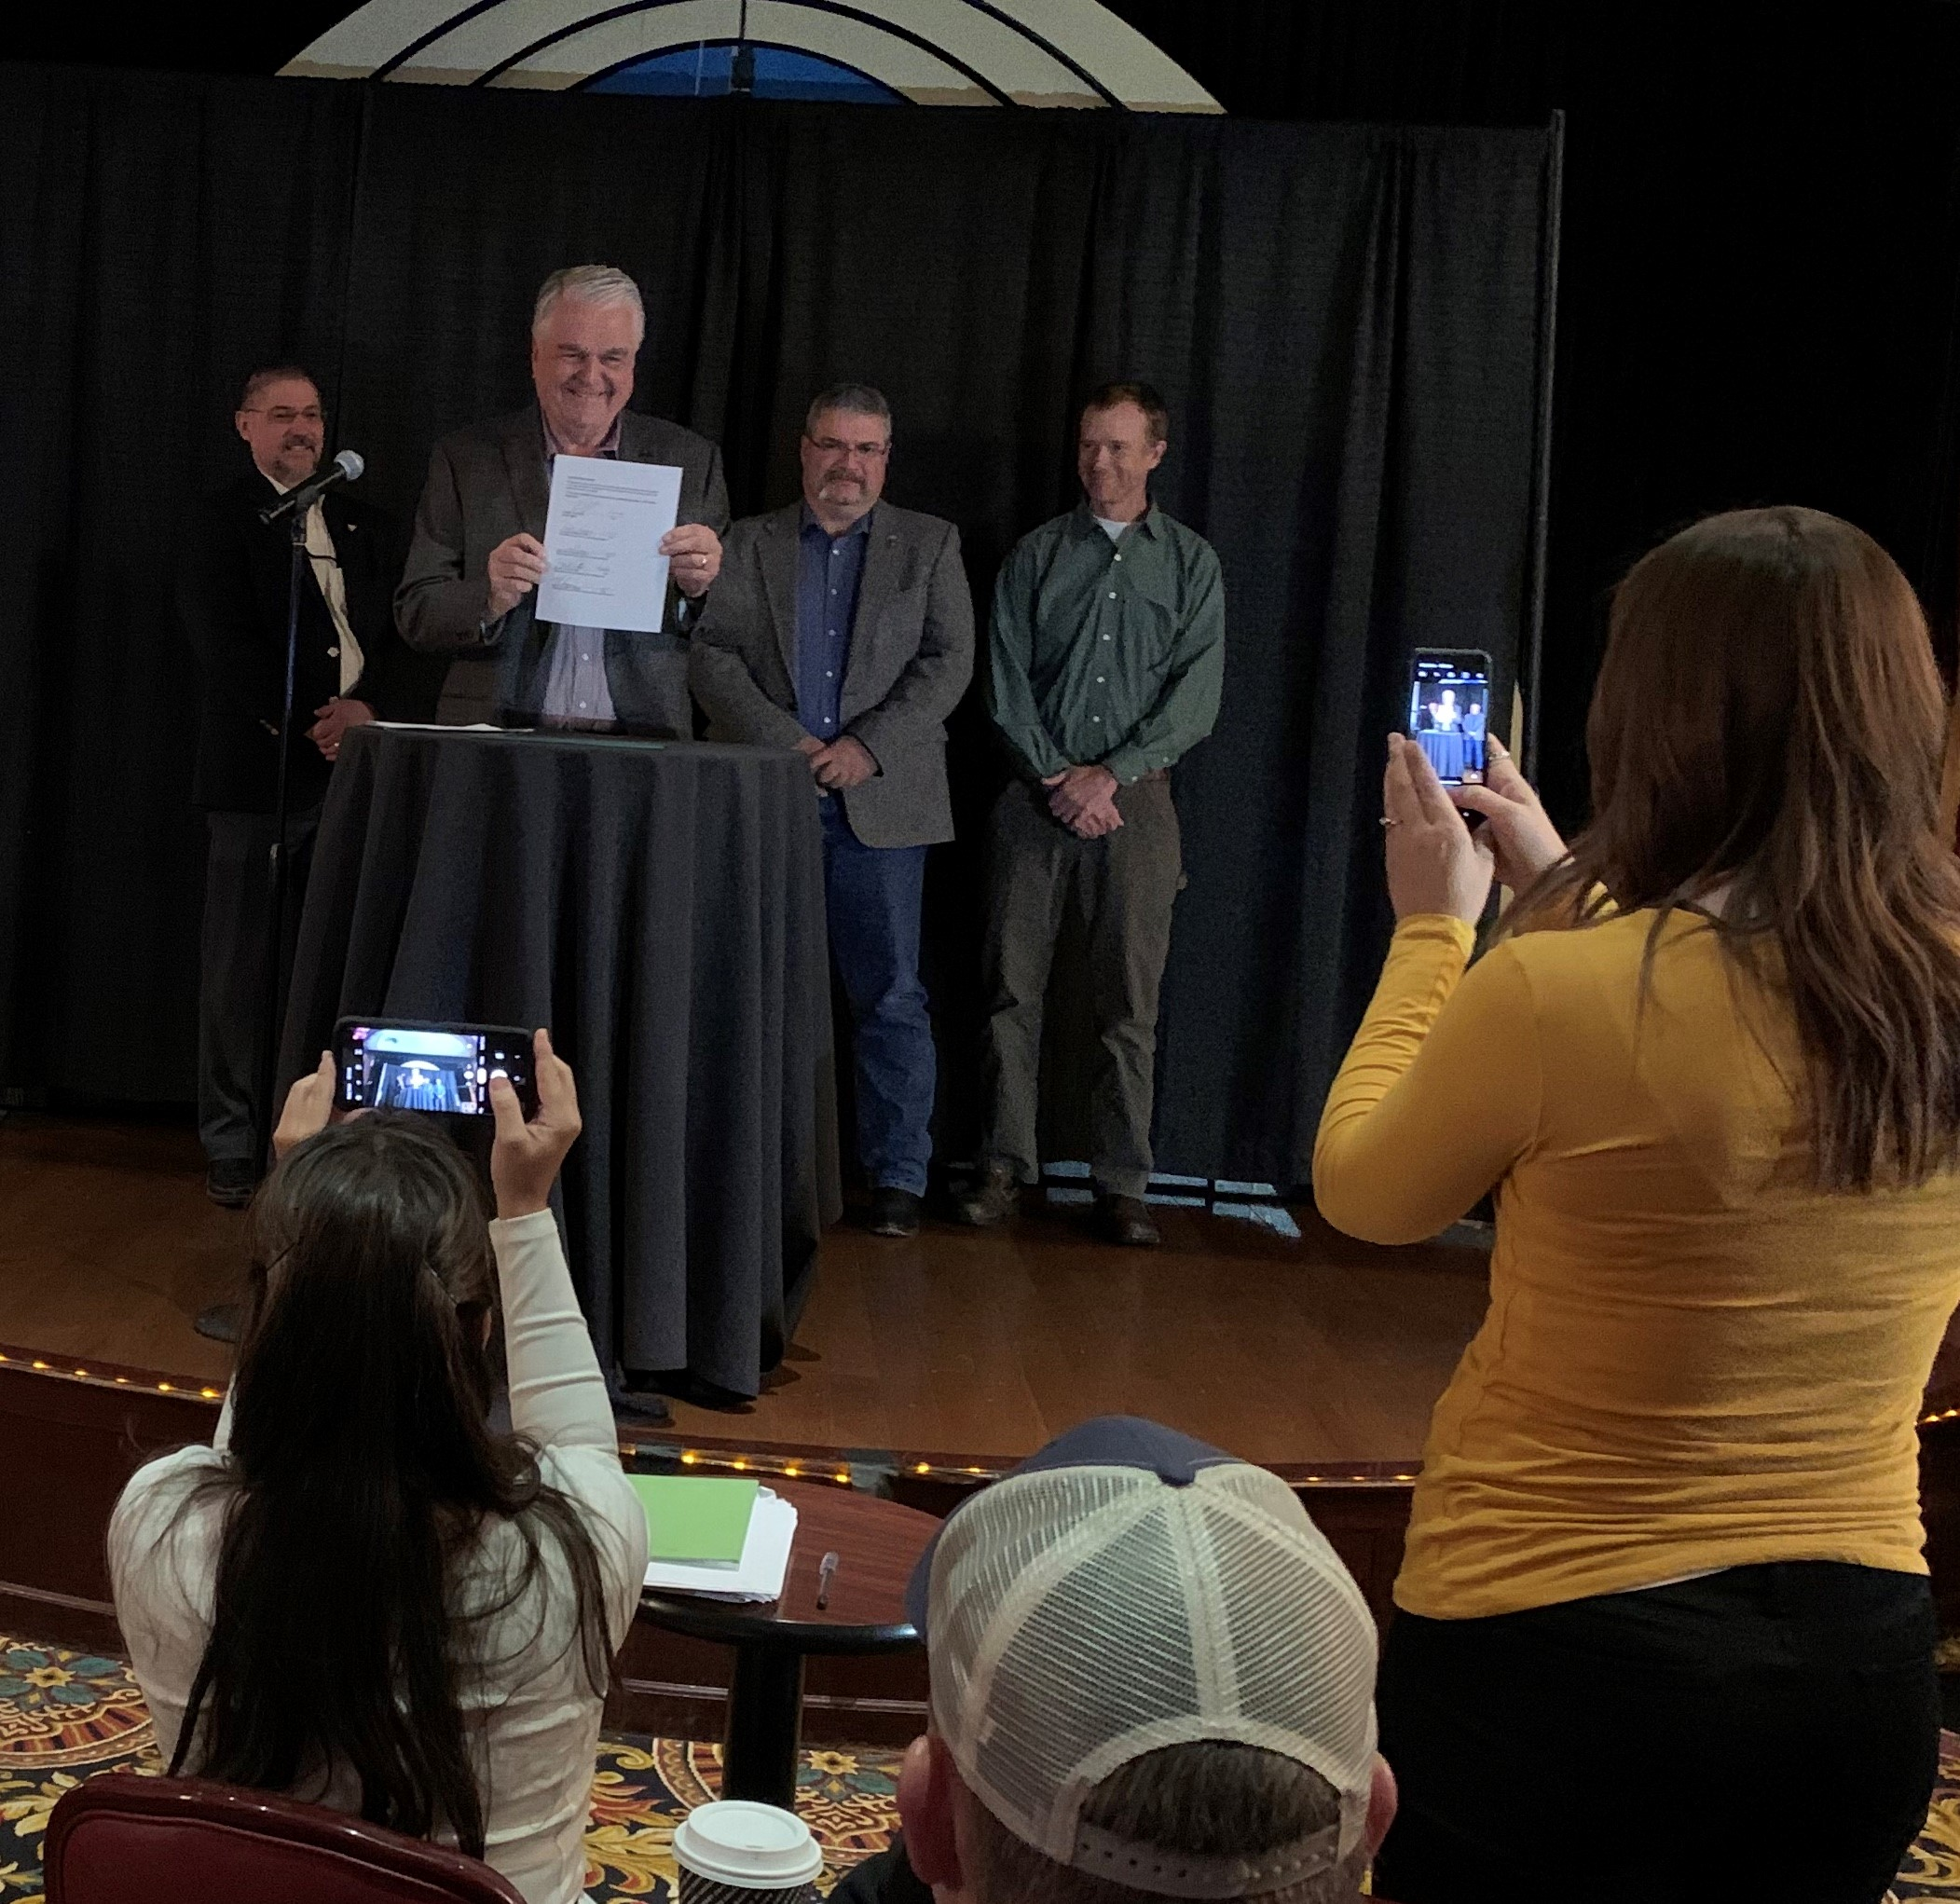 2019 Shared Stewardship Signing with Nevada Governor Sisolak